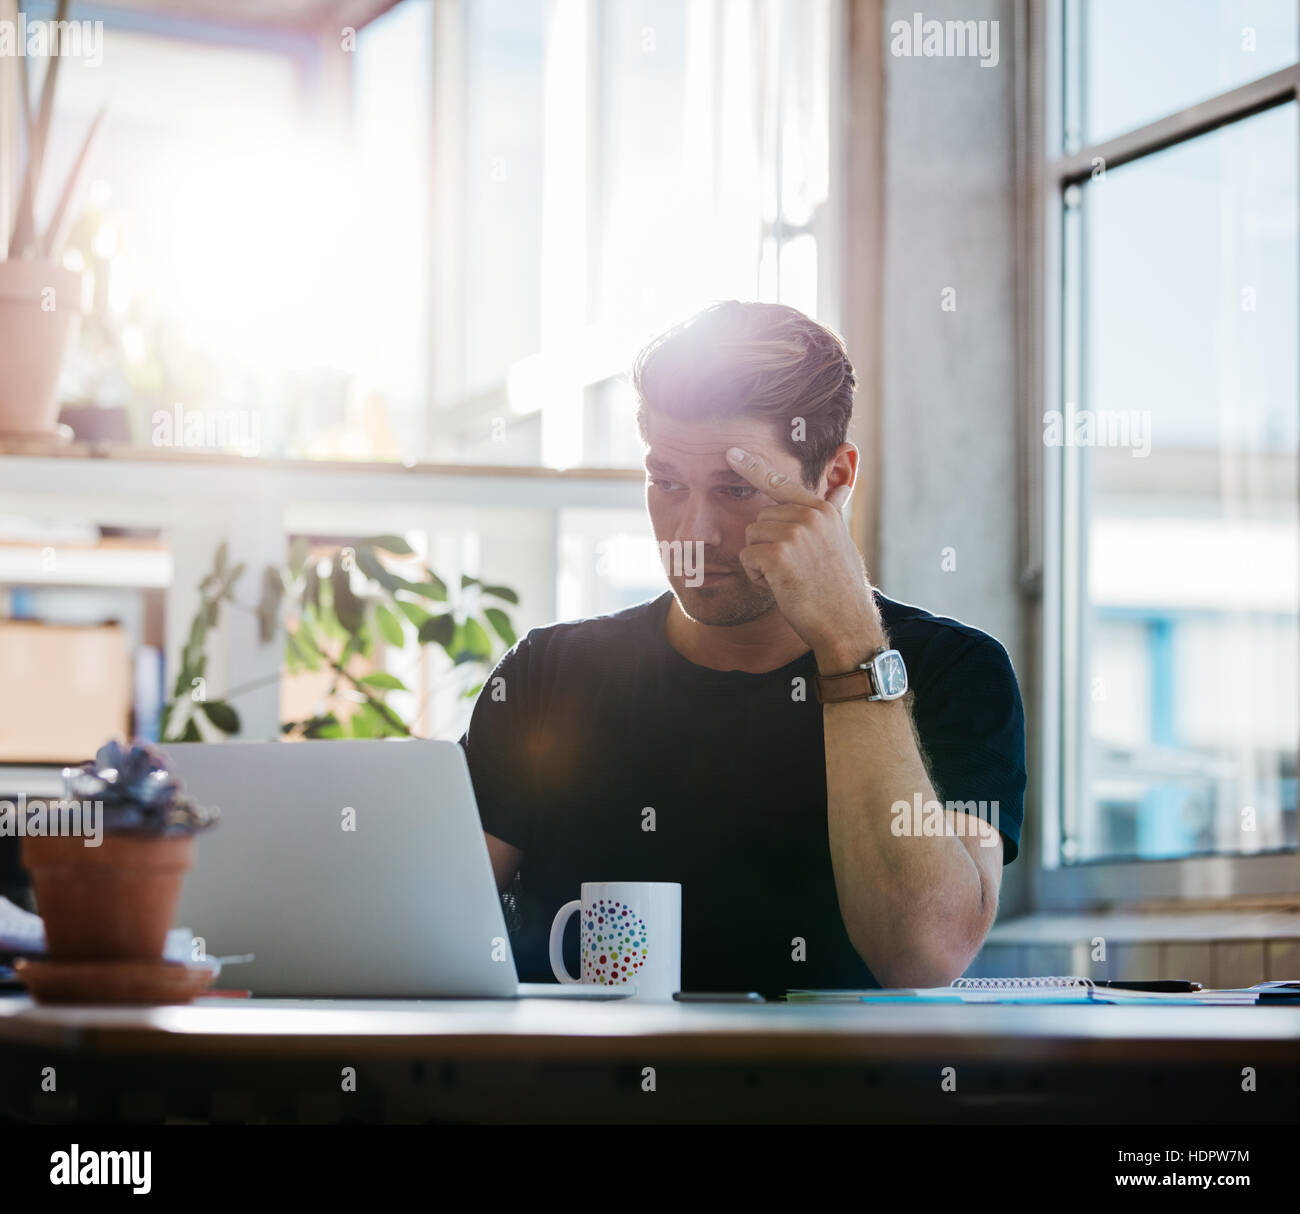 Young business man with stress looking at his laptop in the office. Male executive concentrating at work. - Stock Image